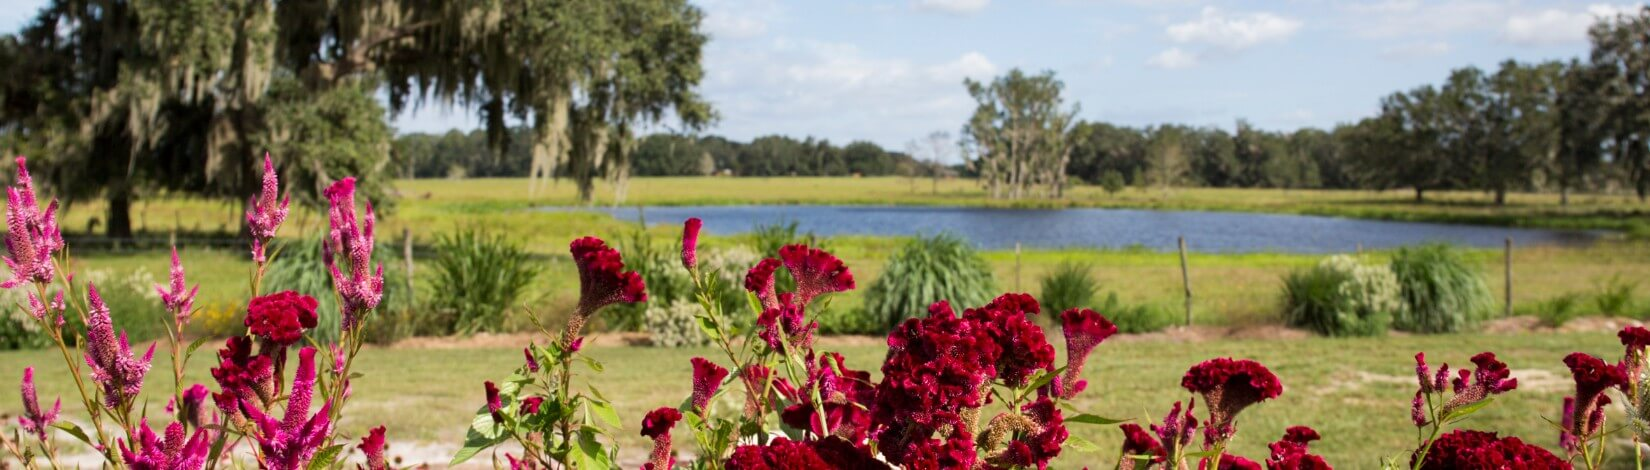 red flowers in foreground with background view of lake and trees